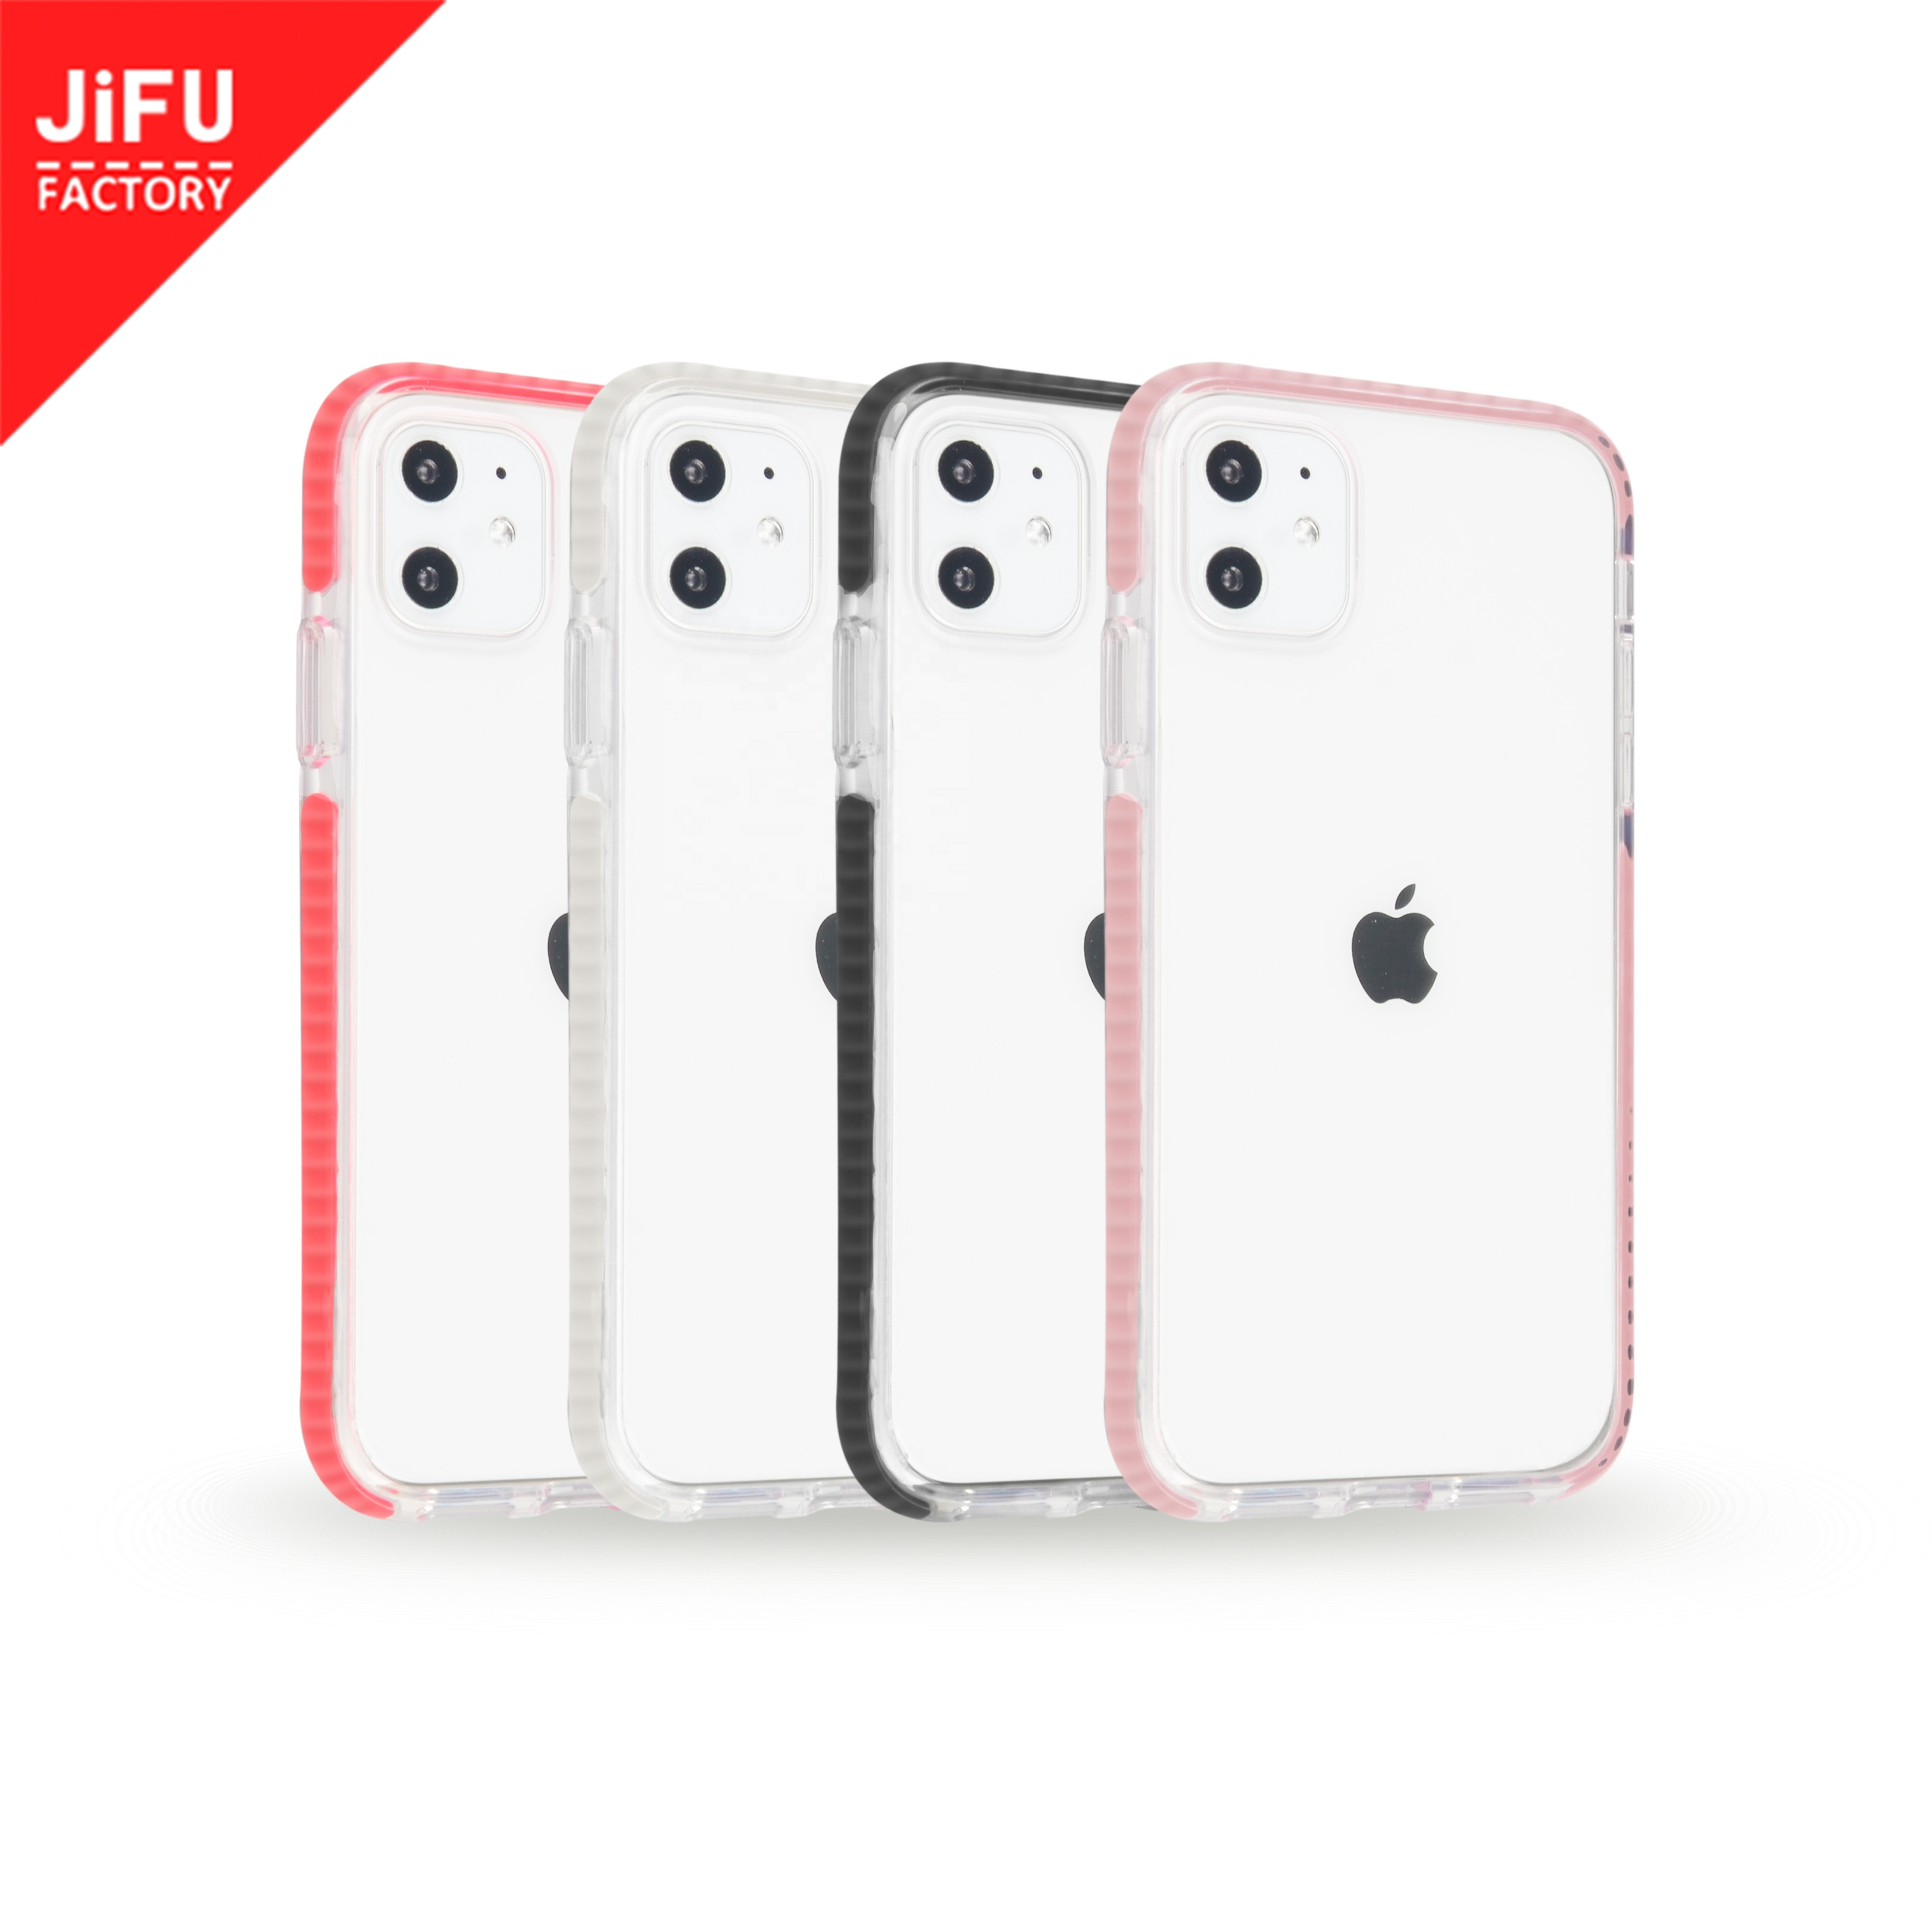 PC+TPU two-tone <strong>phone</strong> <strong>case</strong> for iPhone11/11 Pro/11 Pro Max